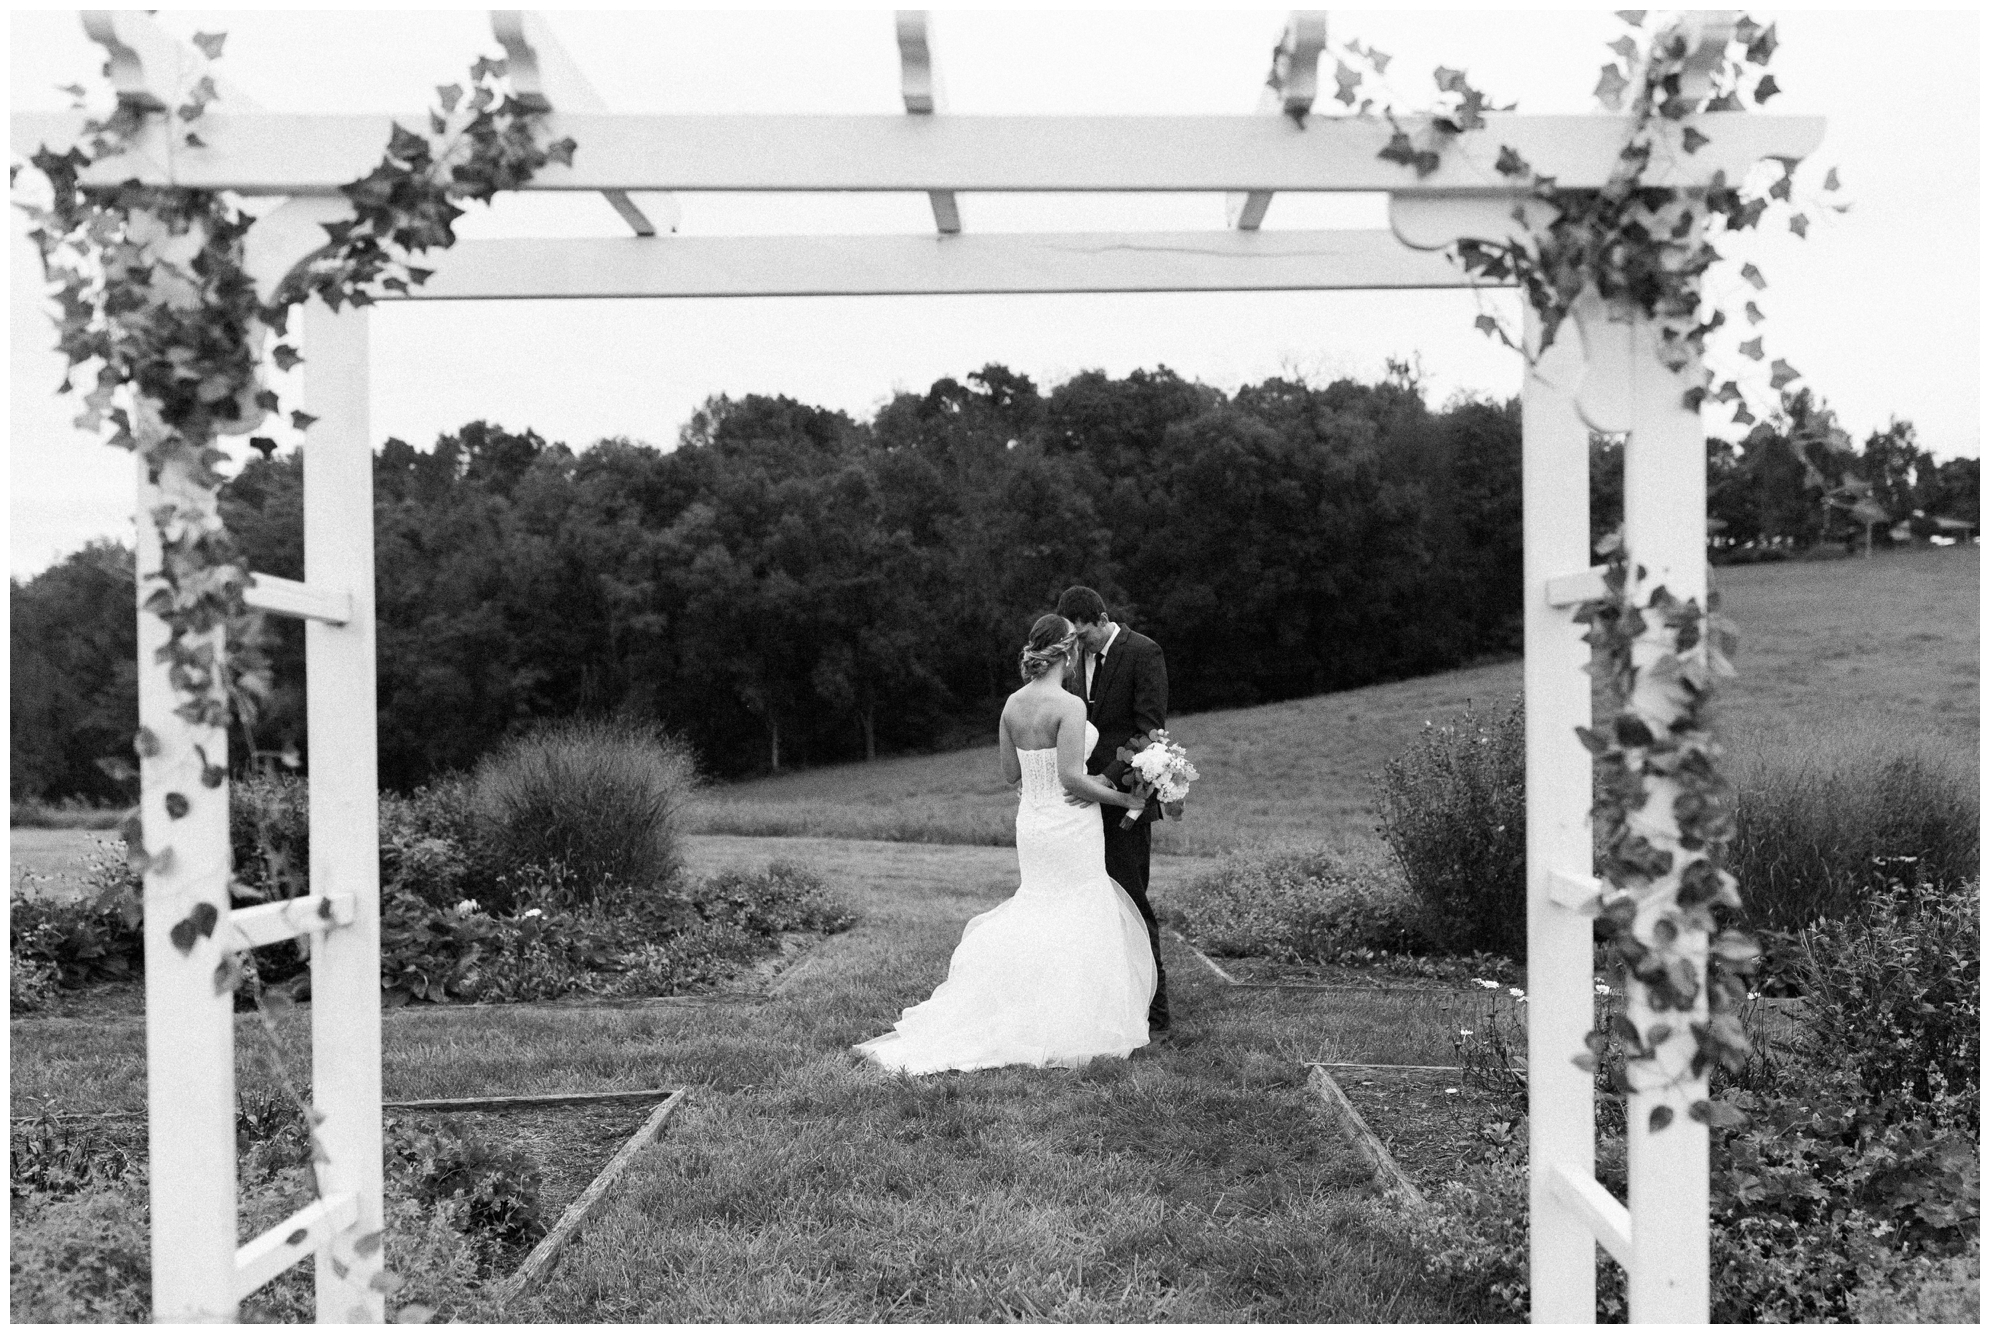 Rainy fall wedding featuring dusty blue bridesmaid dresses, bow ties and a cathedral veil at On Sunny Slope Farm in Harrisonburg, Virginia.